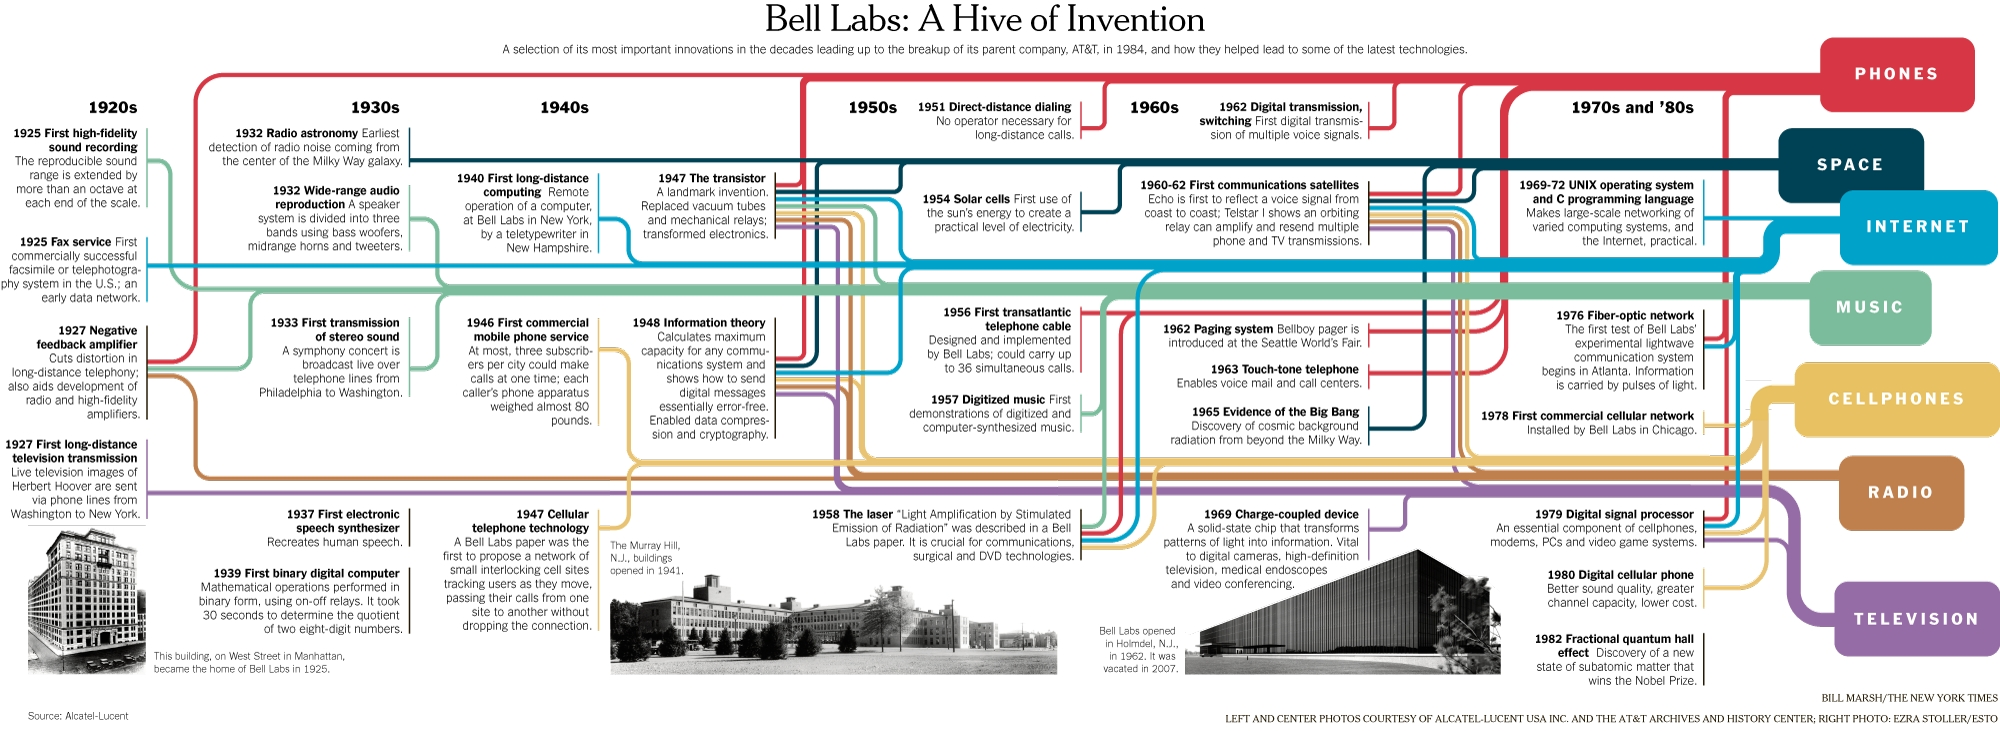 10 Attractive The Idea Factory Bell Labs bell system memorial bell labs